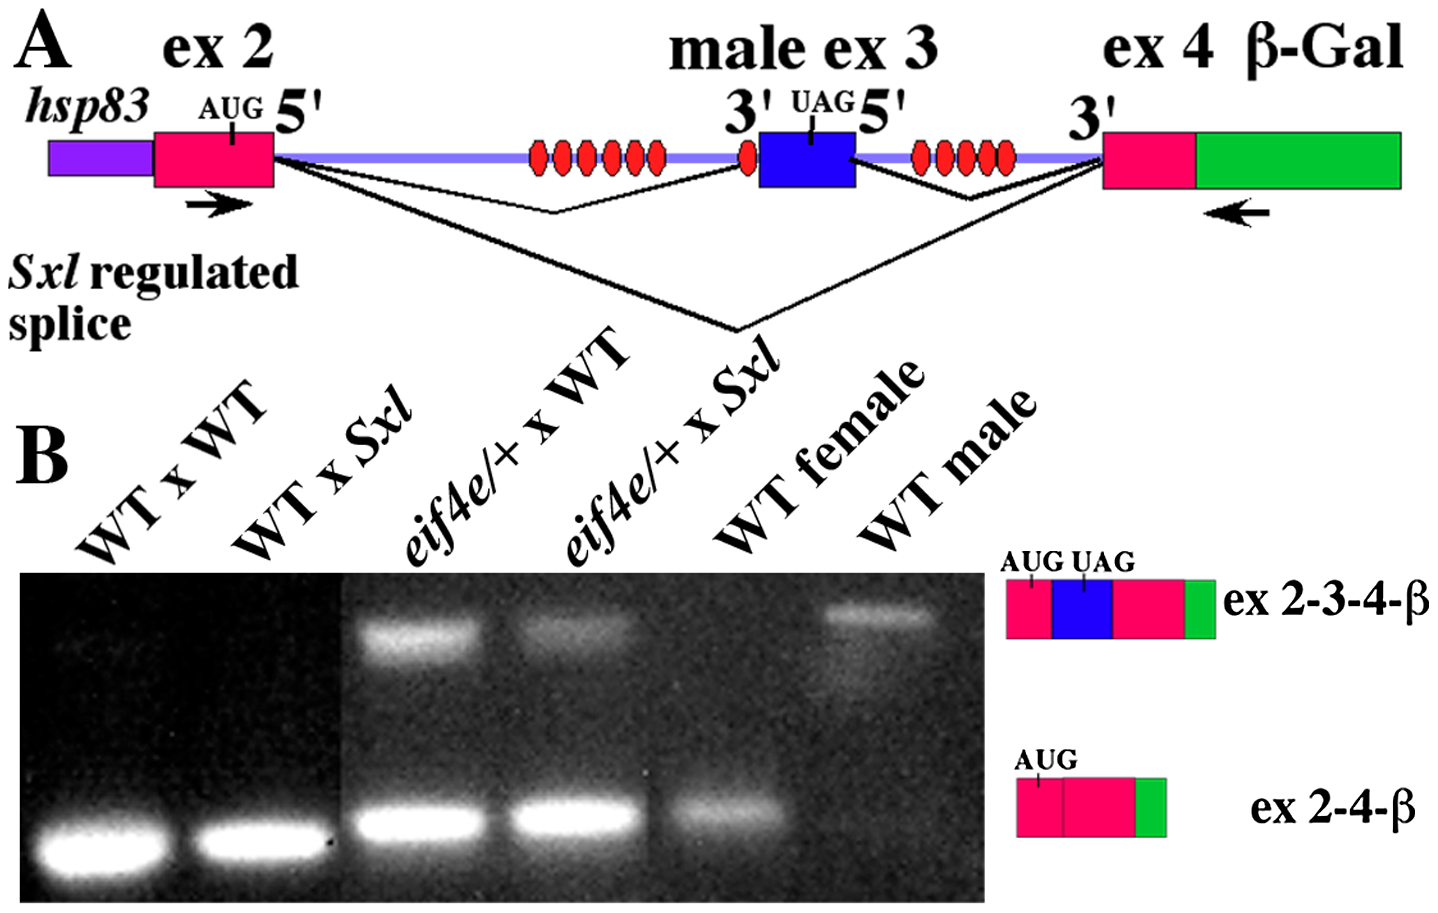 Female progeny of <i>eif4e/+</i> mothers produce male transcripts during early embryogenesis and in splicing compromised backgrounds.